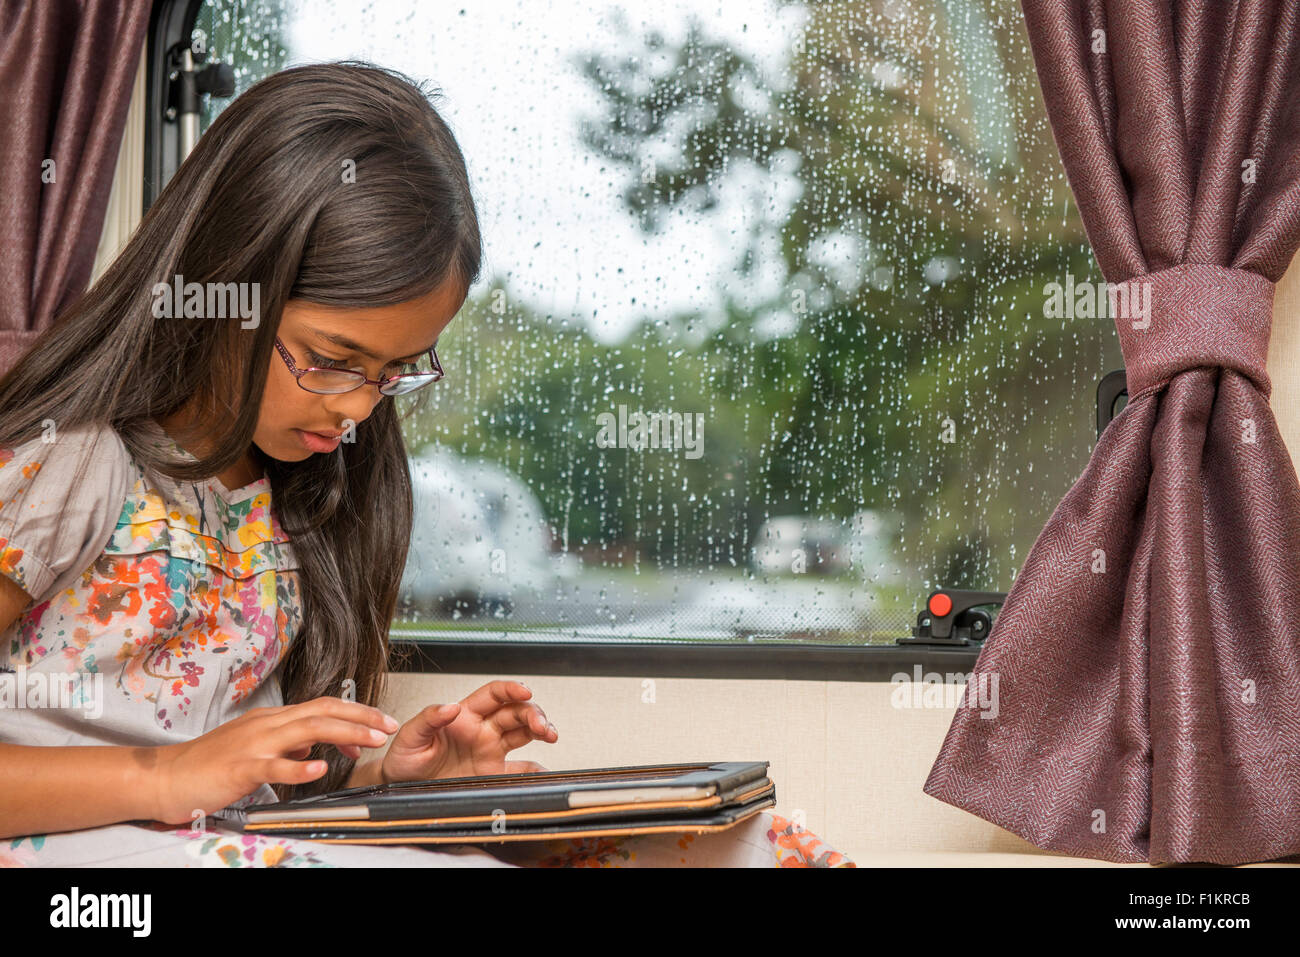 Young girl playing with her I pad, in a rainy day, UK - Stock Image